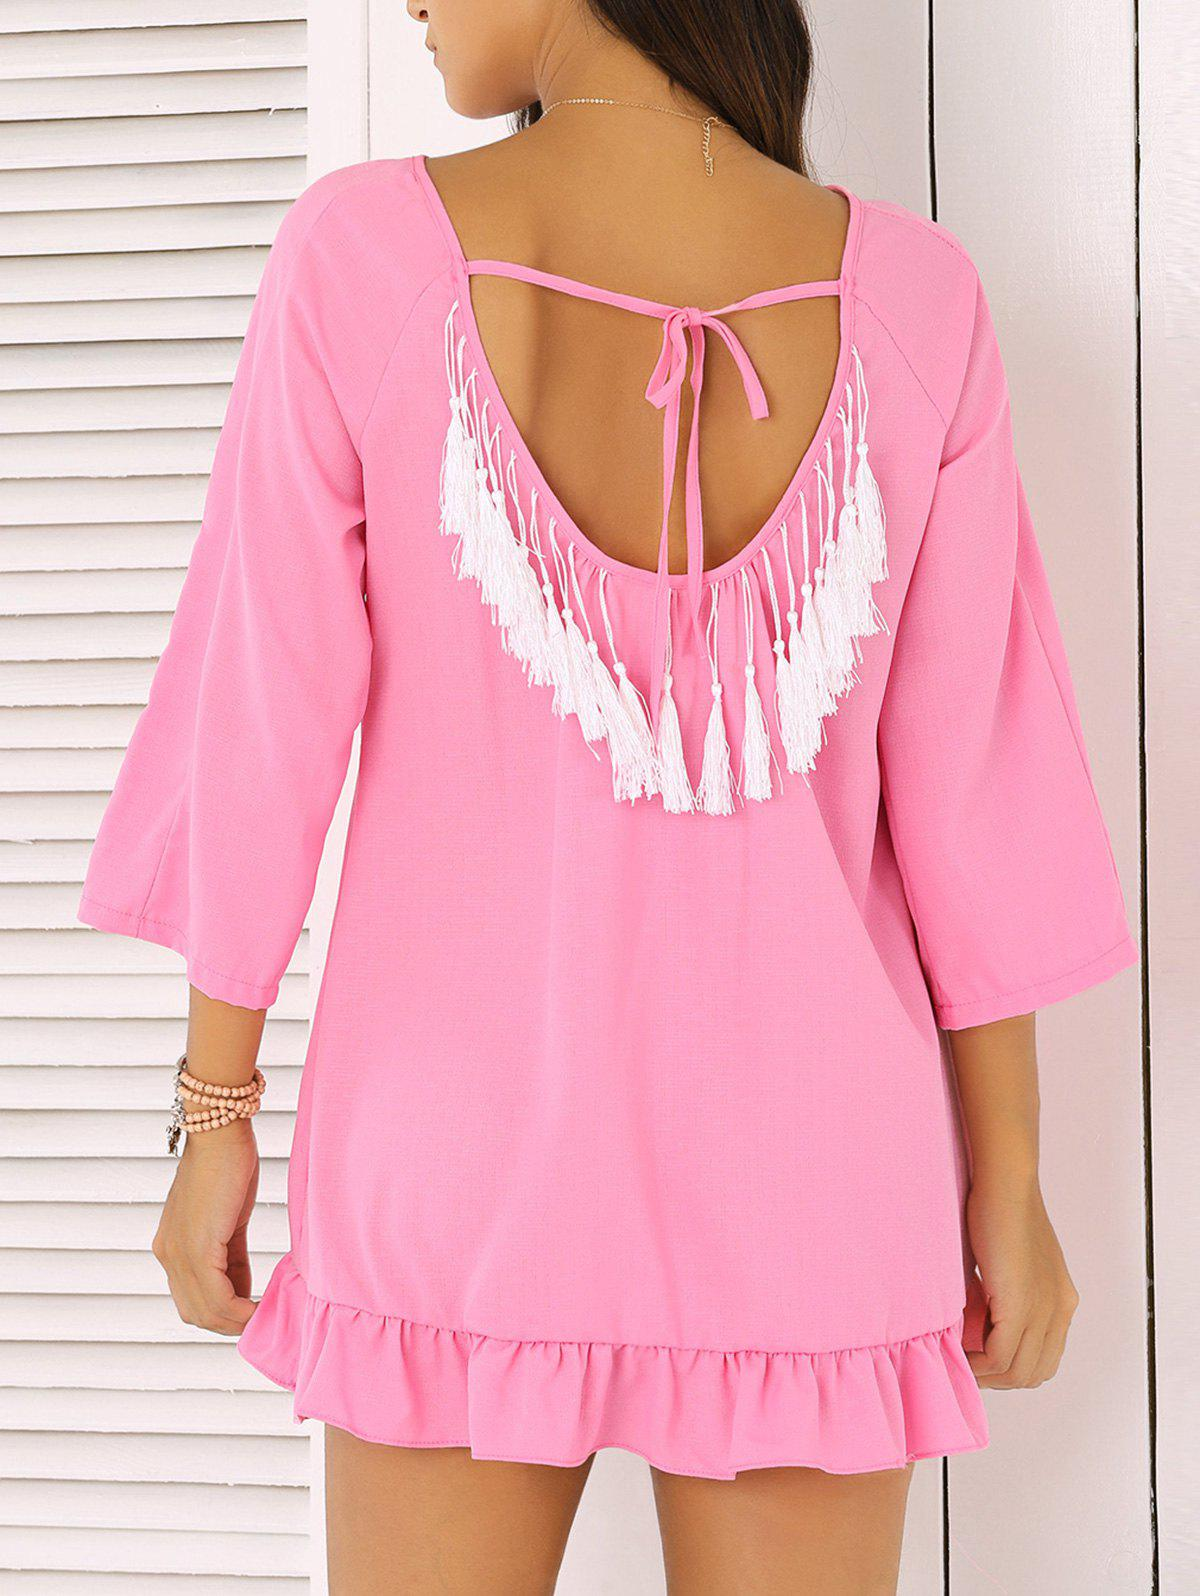 Chic 3/4 Sleeve Fringed Backless Women's Dress